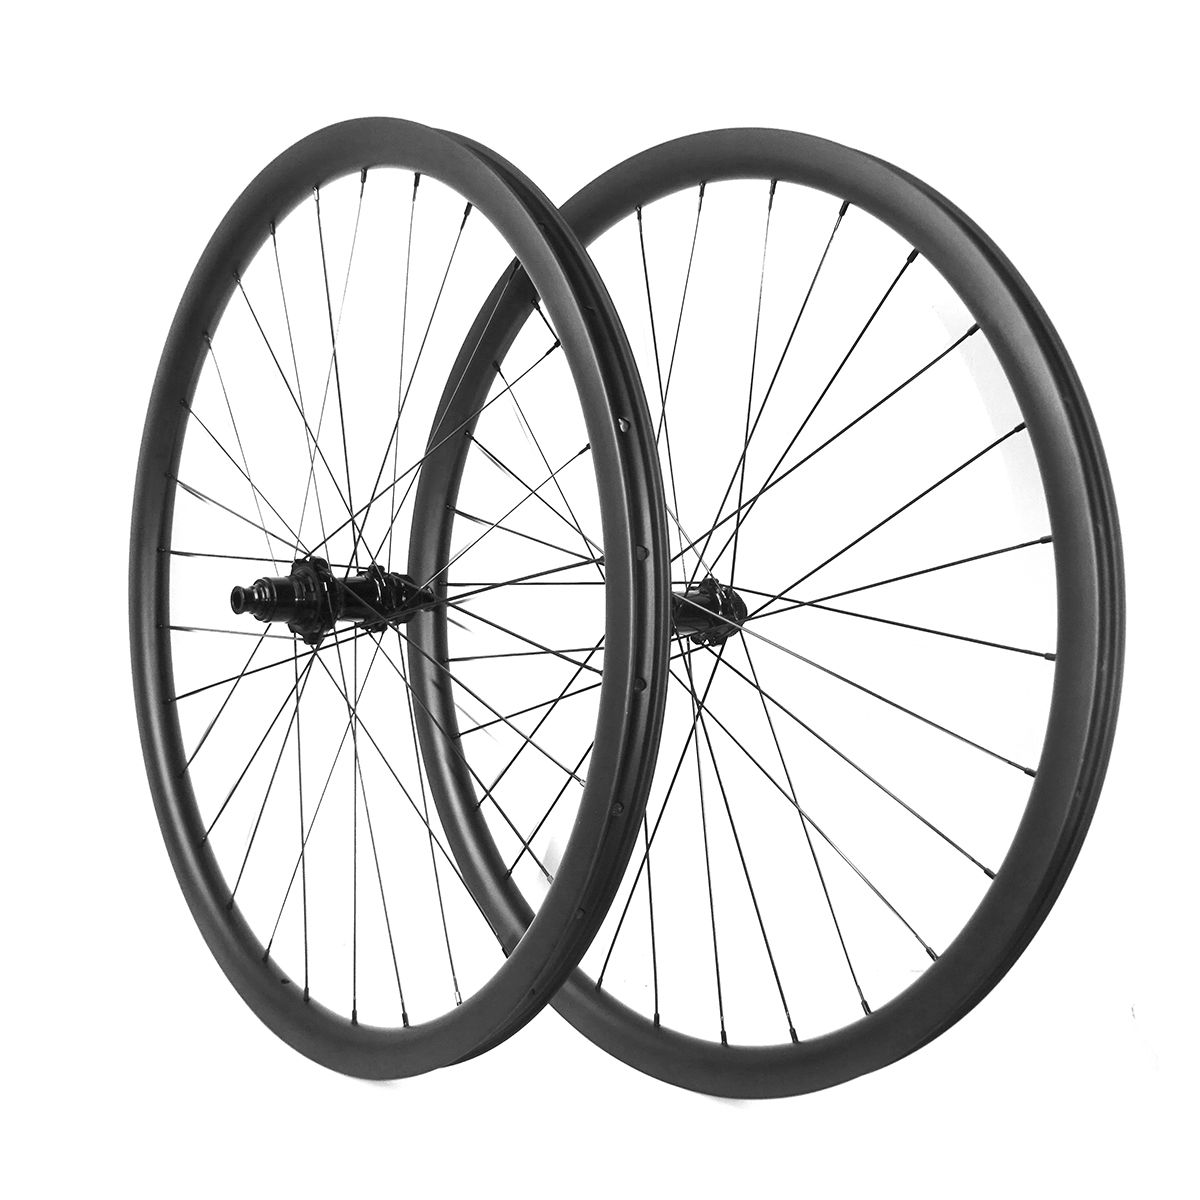 Serenadebikes 29er Boost Carbon Mtb Bicycle Wheelset 148 X 12mm